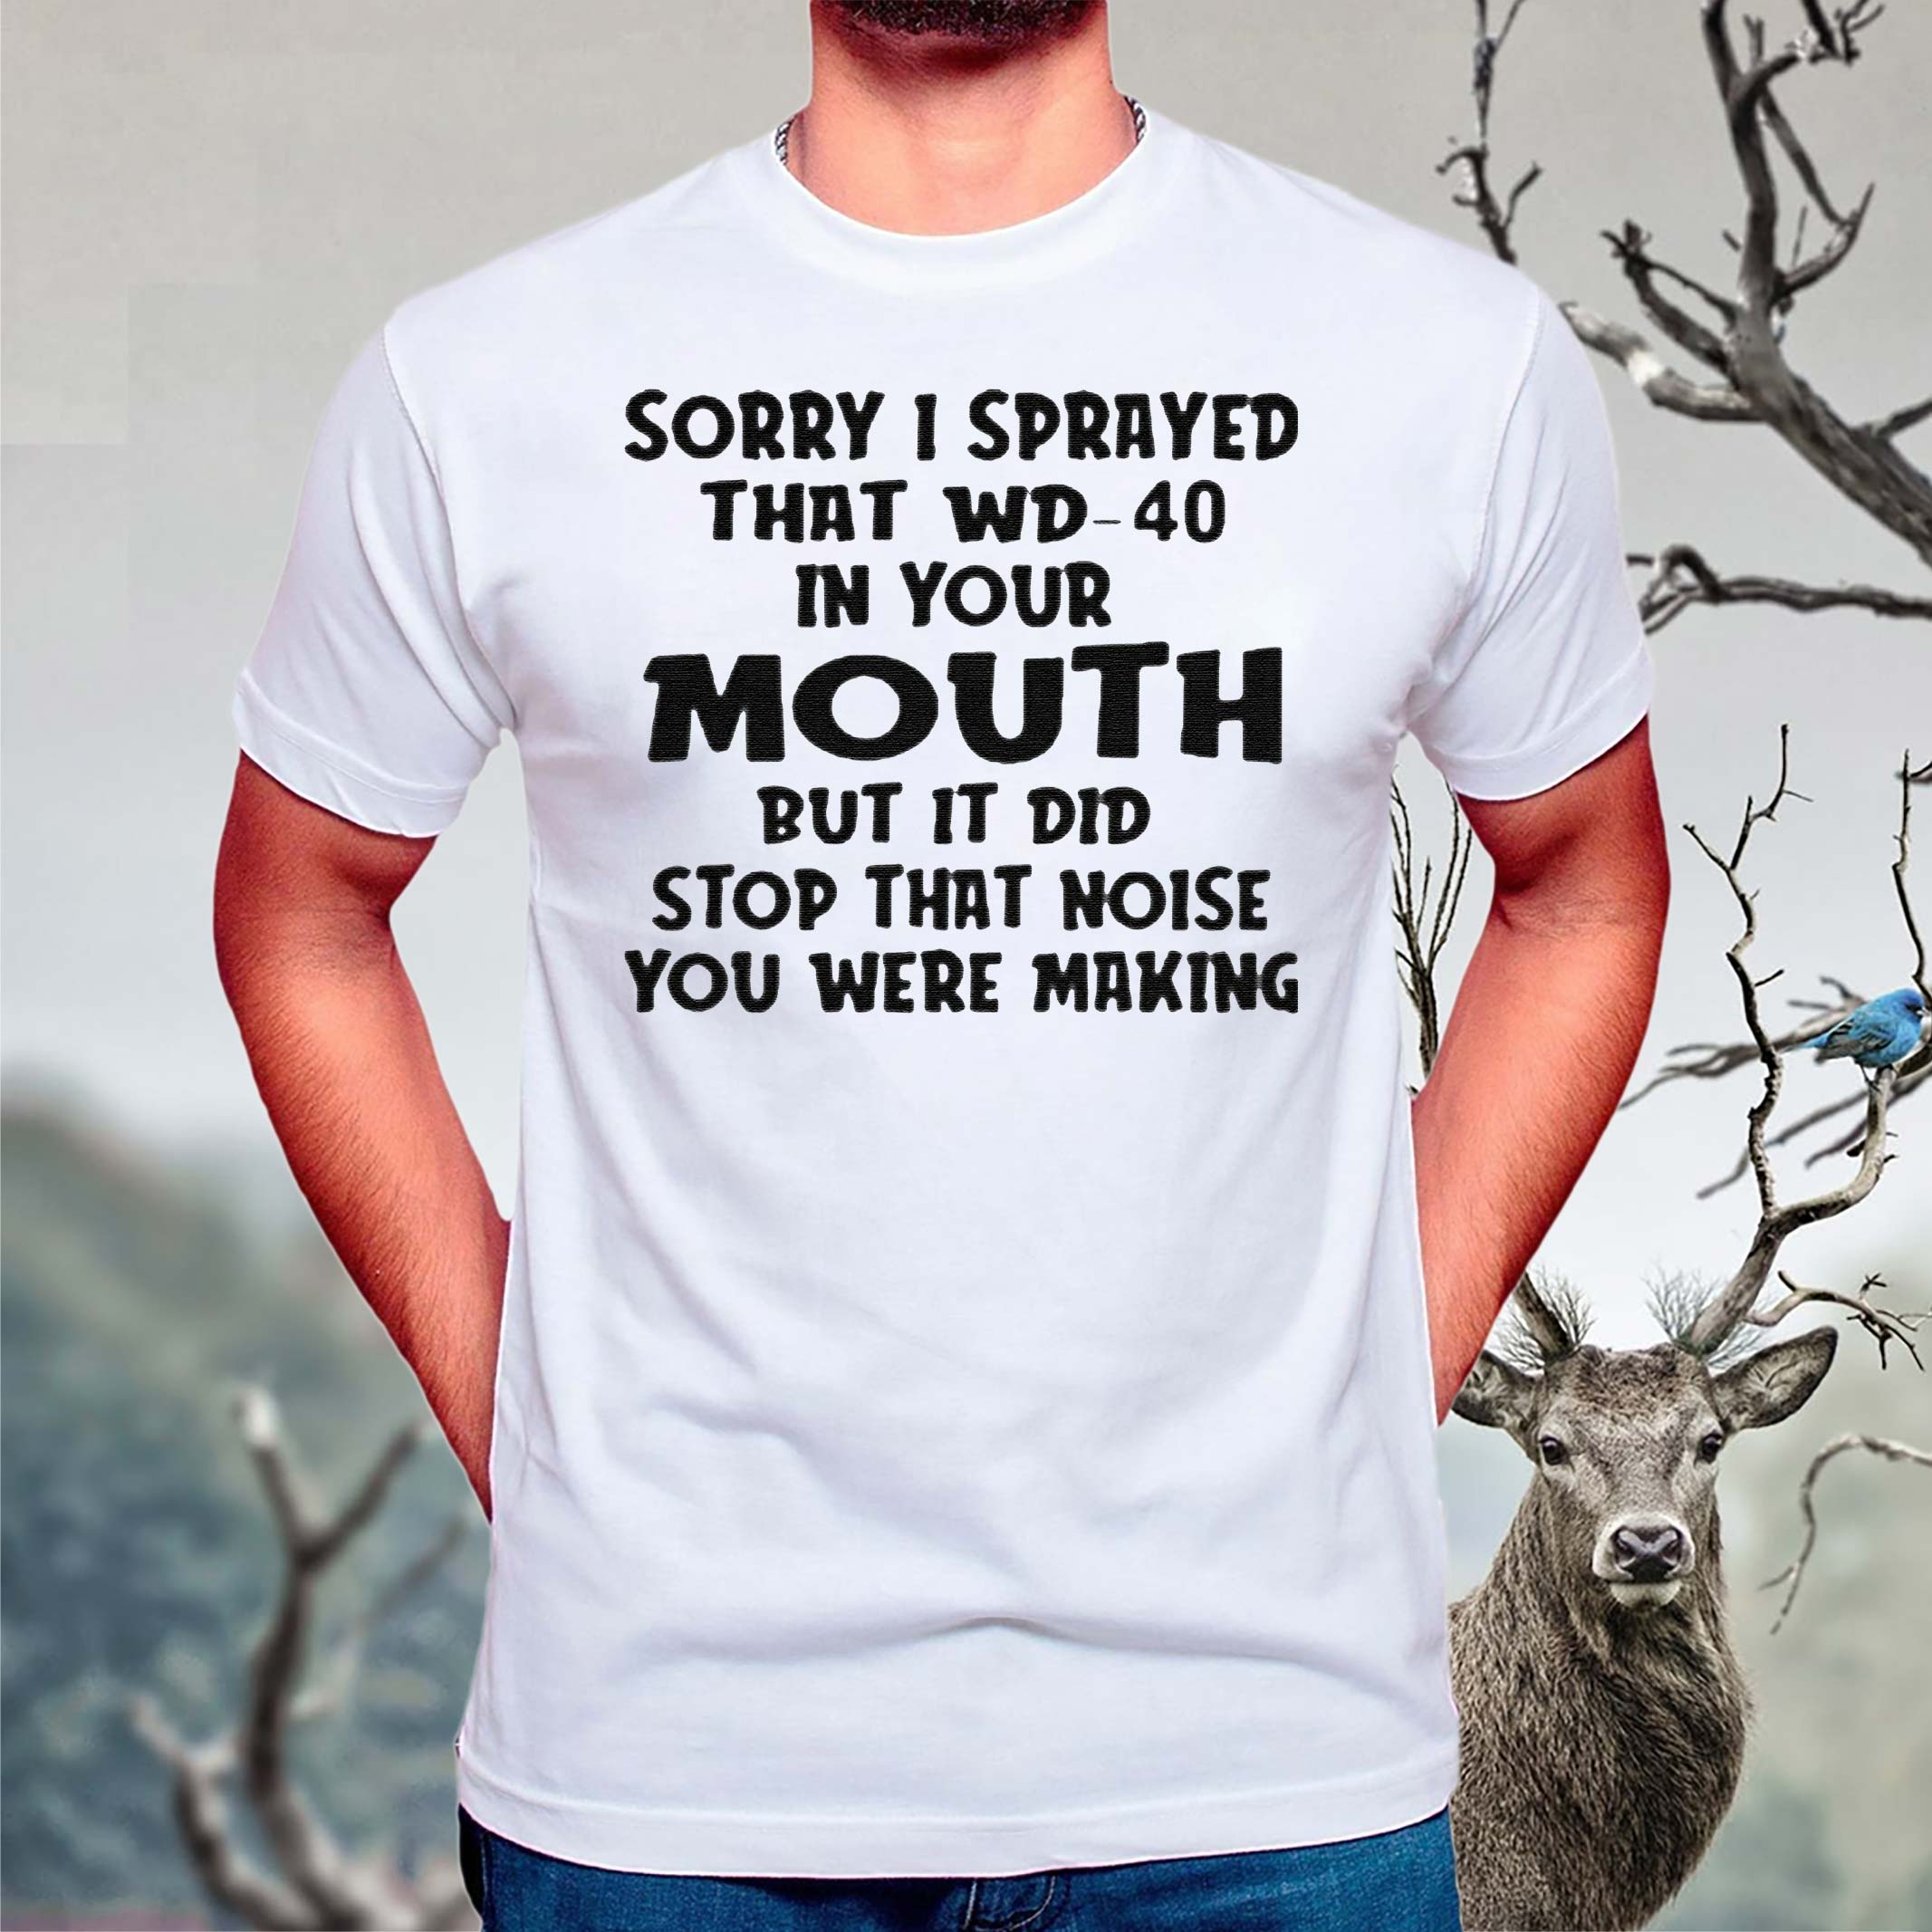 Sorry-I-sprayed-that-Wd-40-in-your-Mouth-but-it-did-stop-that-noise-You-were-making-shirts